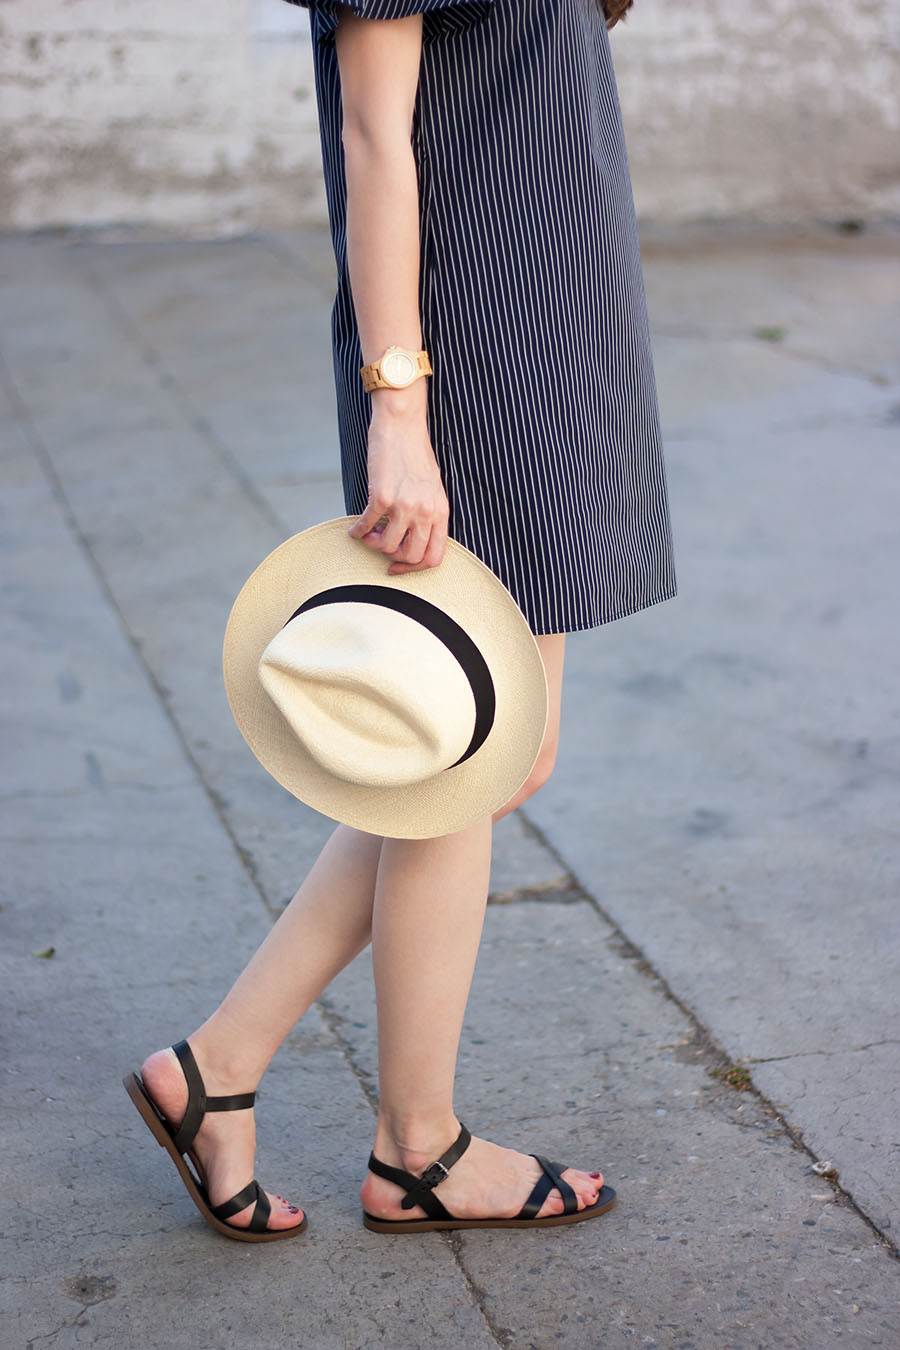 Panama Hat, Jord Watch, Madewell Criss Cross Sandals, Banana Republic